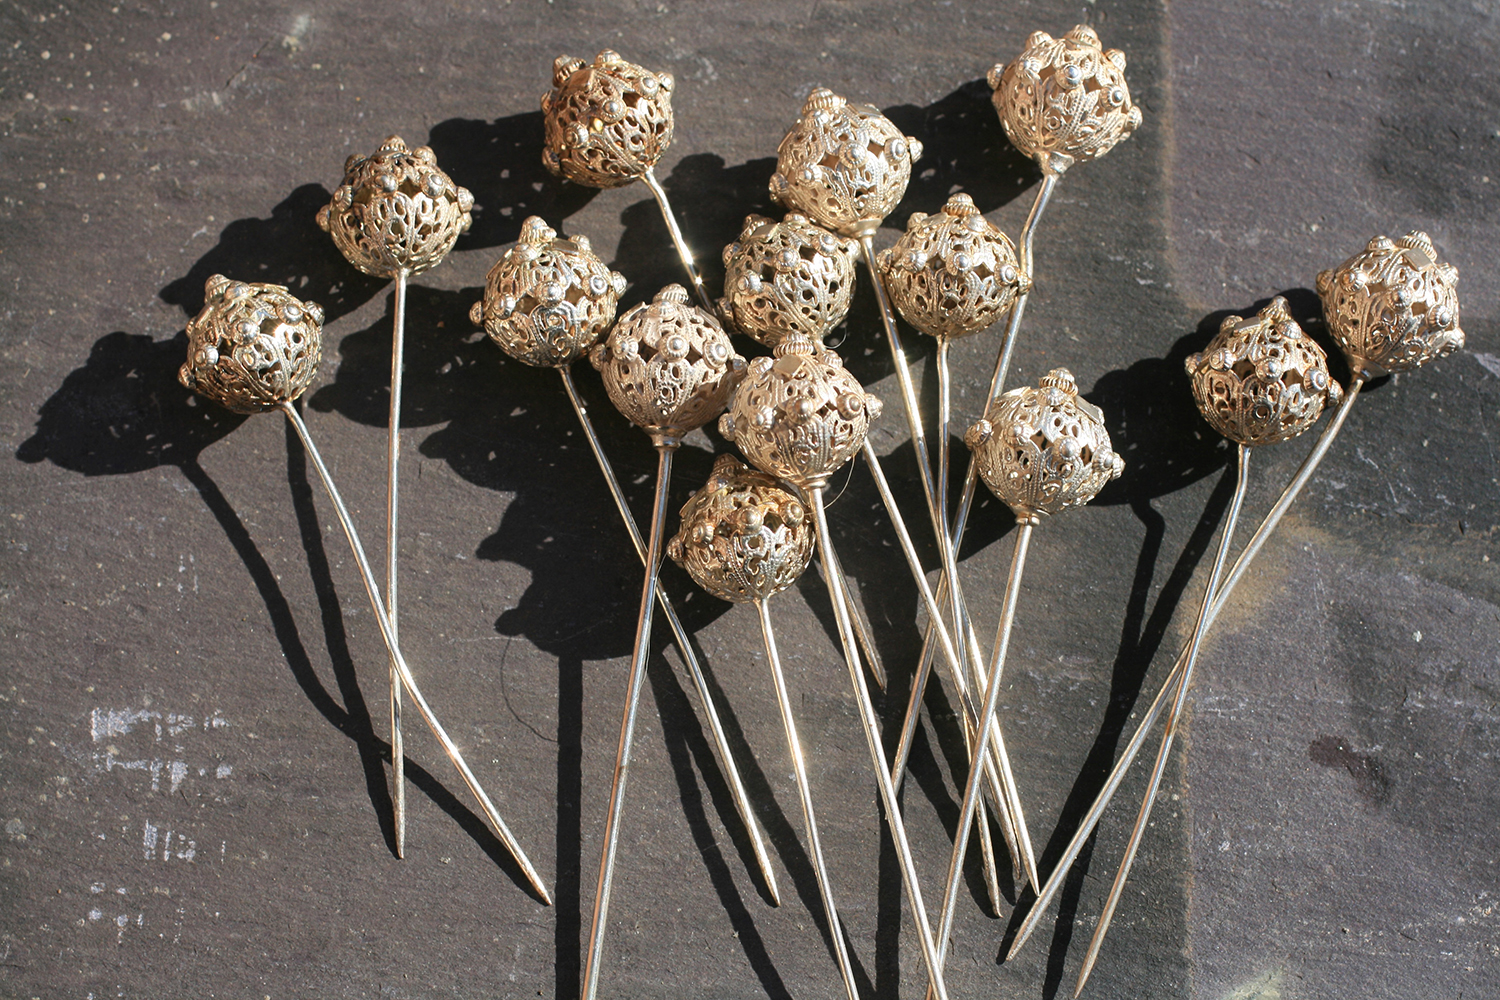 Victorian One Point Hair Pins. Currently for sale at Elder & Bloom.